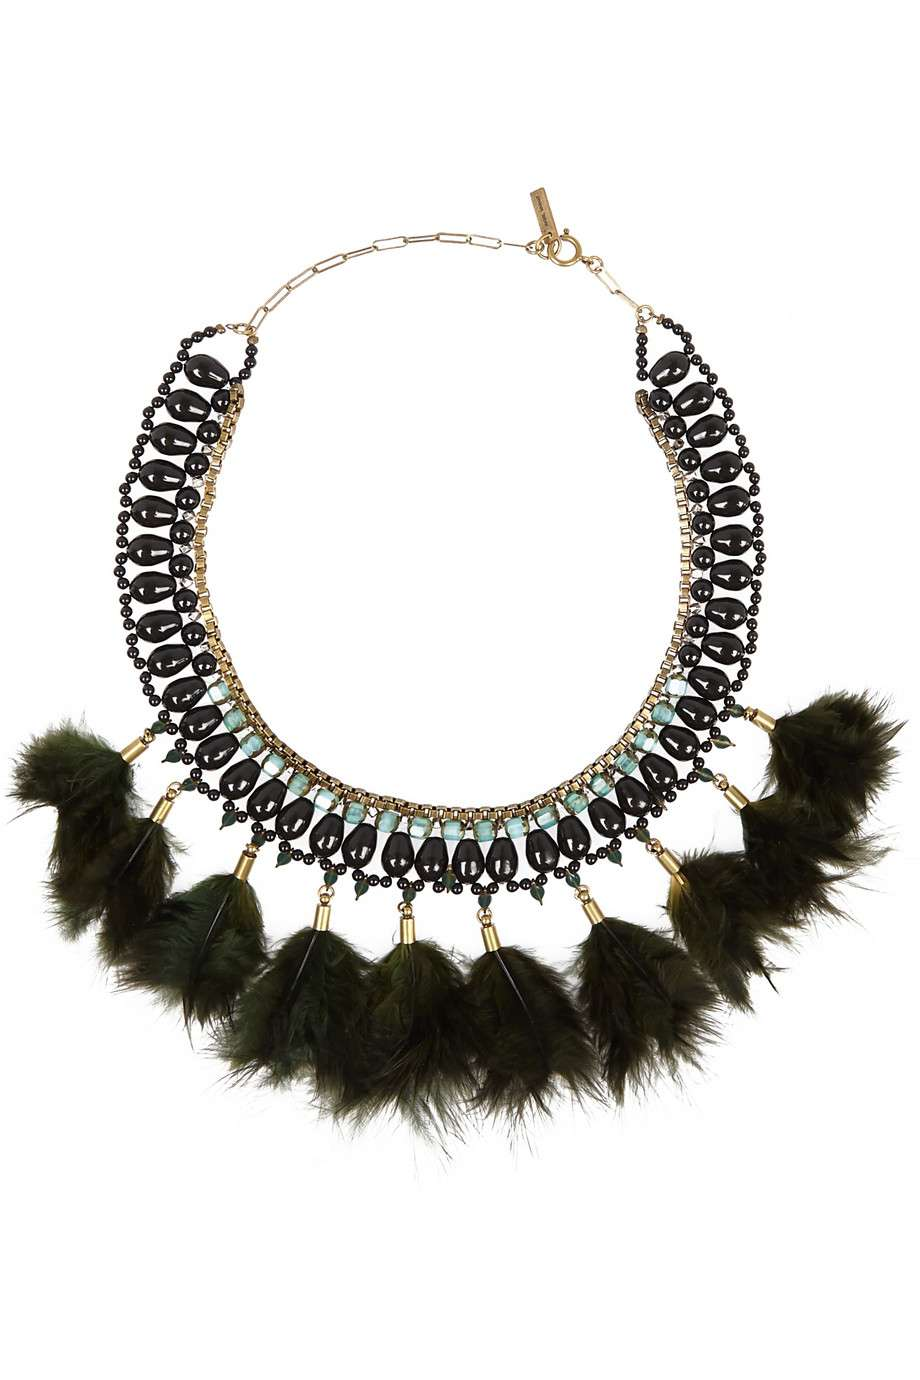 Isabel Marant - Collier(480 €)